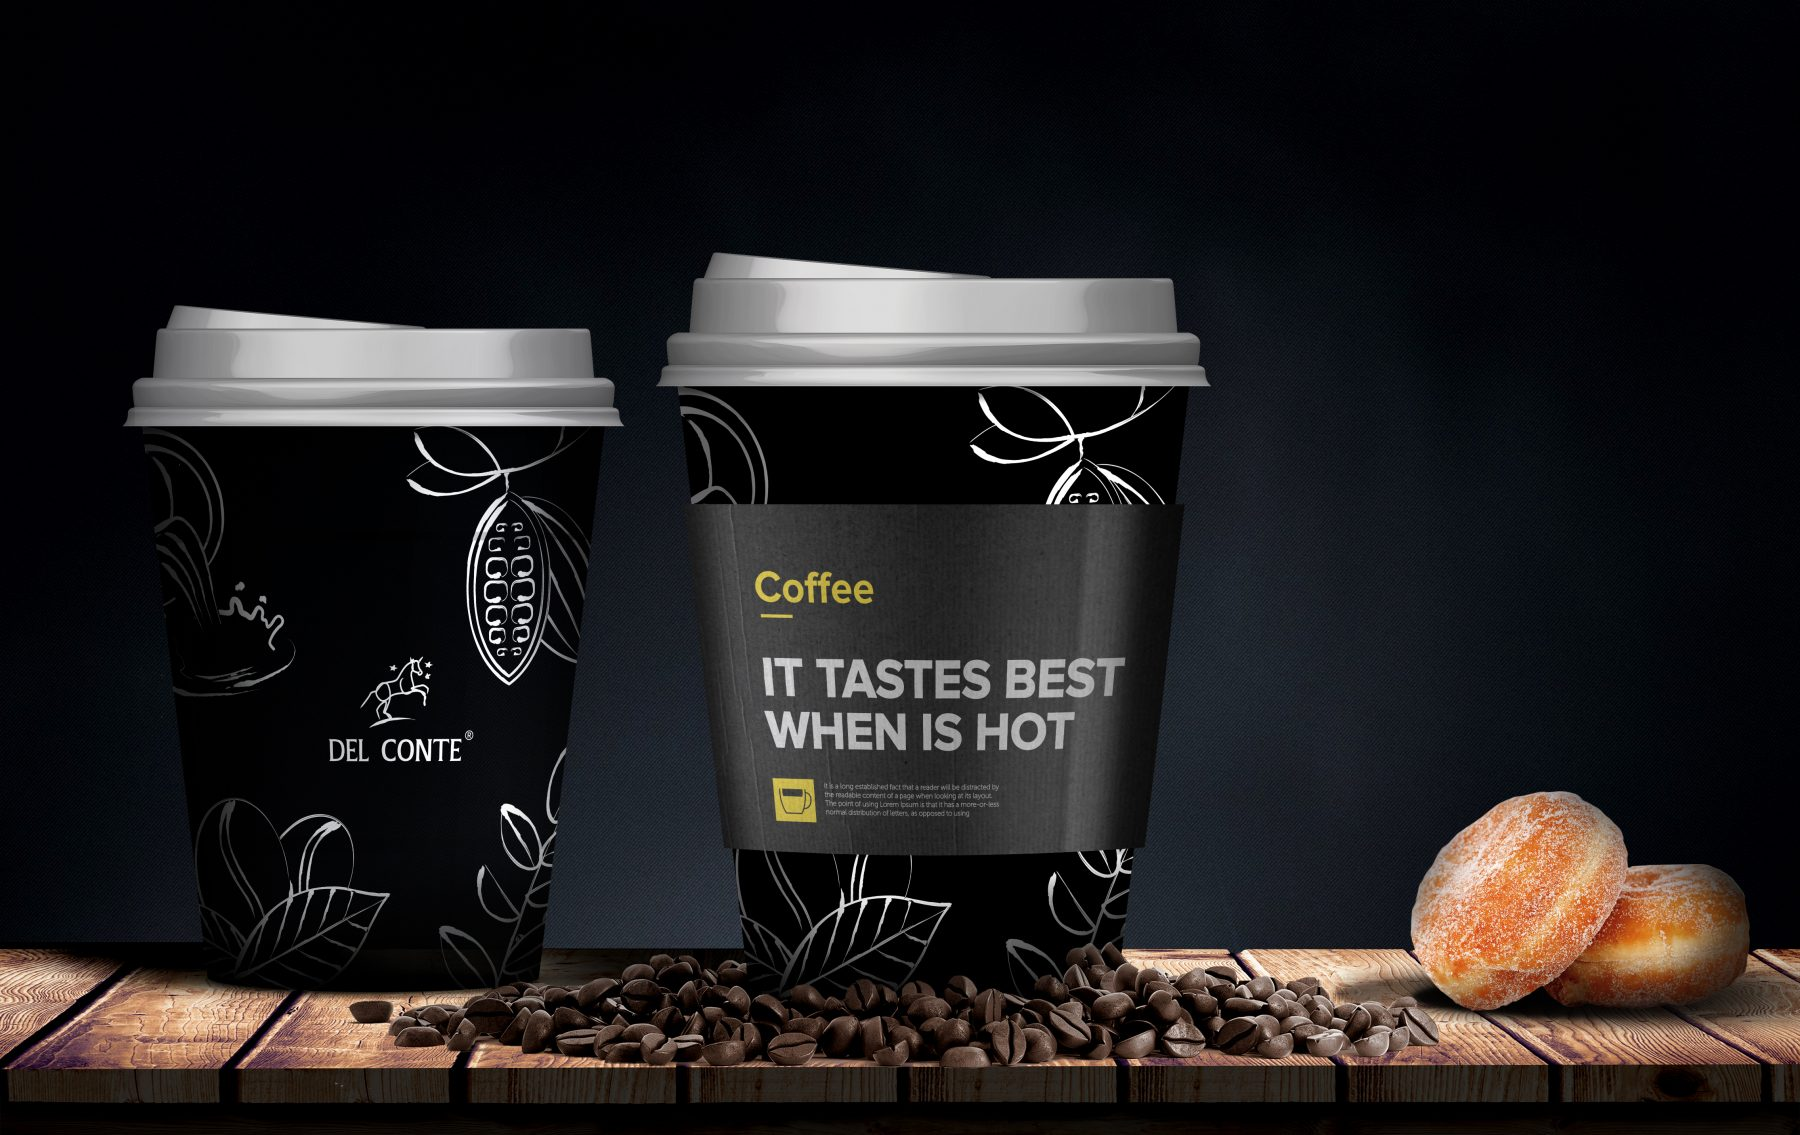 coffee, chocolate, fruit & lemon tea, milk powder, BroHouse, Del Conte, branding,Packaging, logo, pencil drawing style, packs, Oane, Florin , Bostina, reputation, illustration, draw, concept, audit